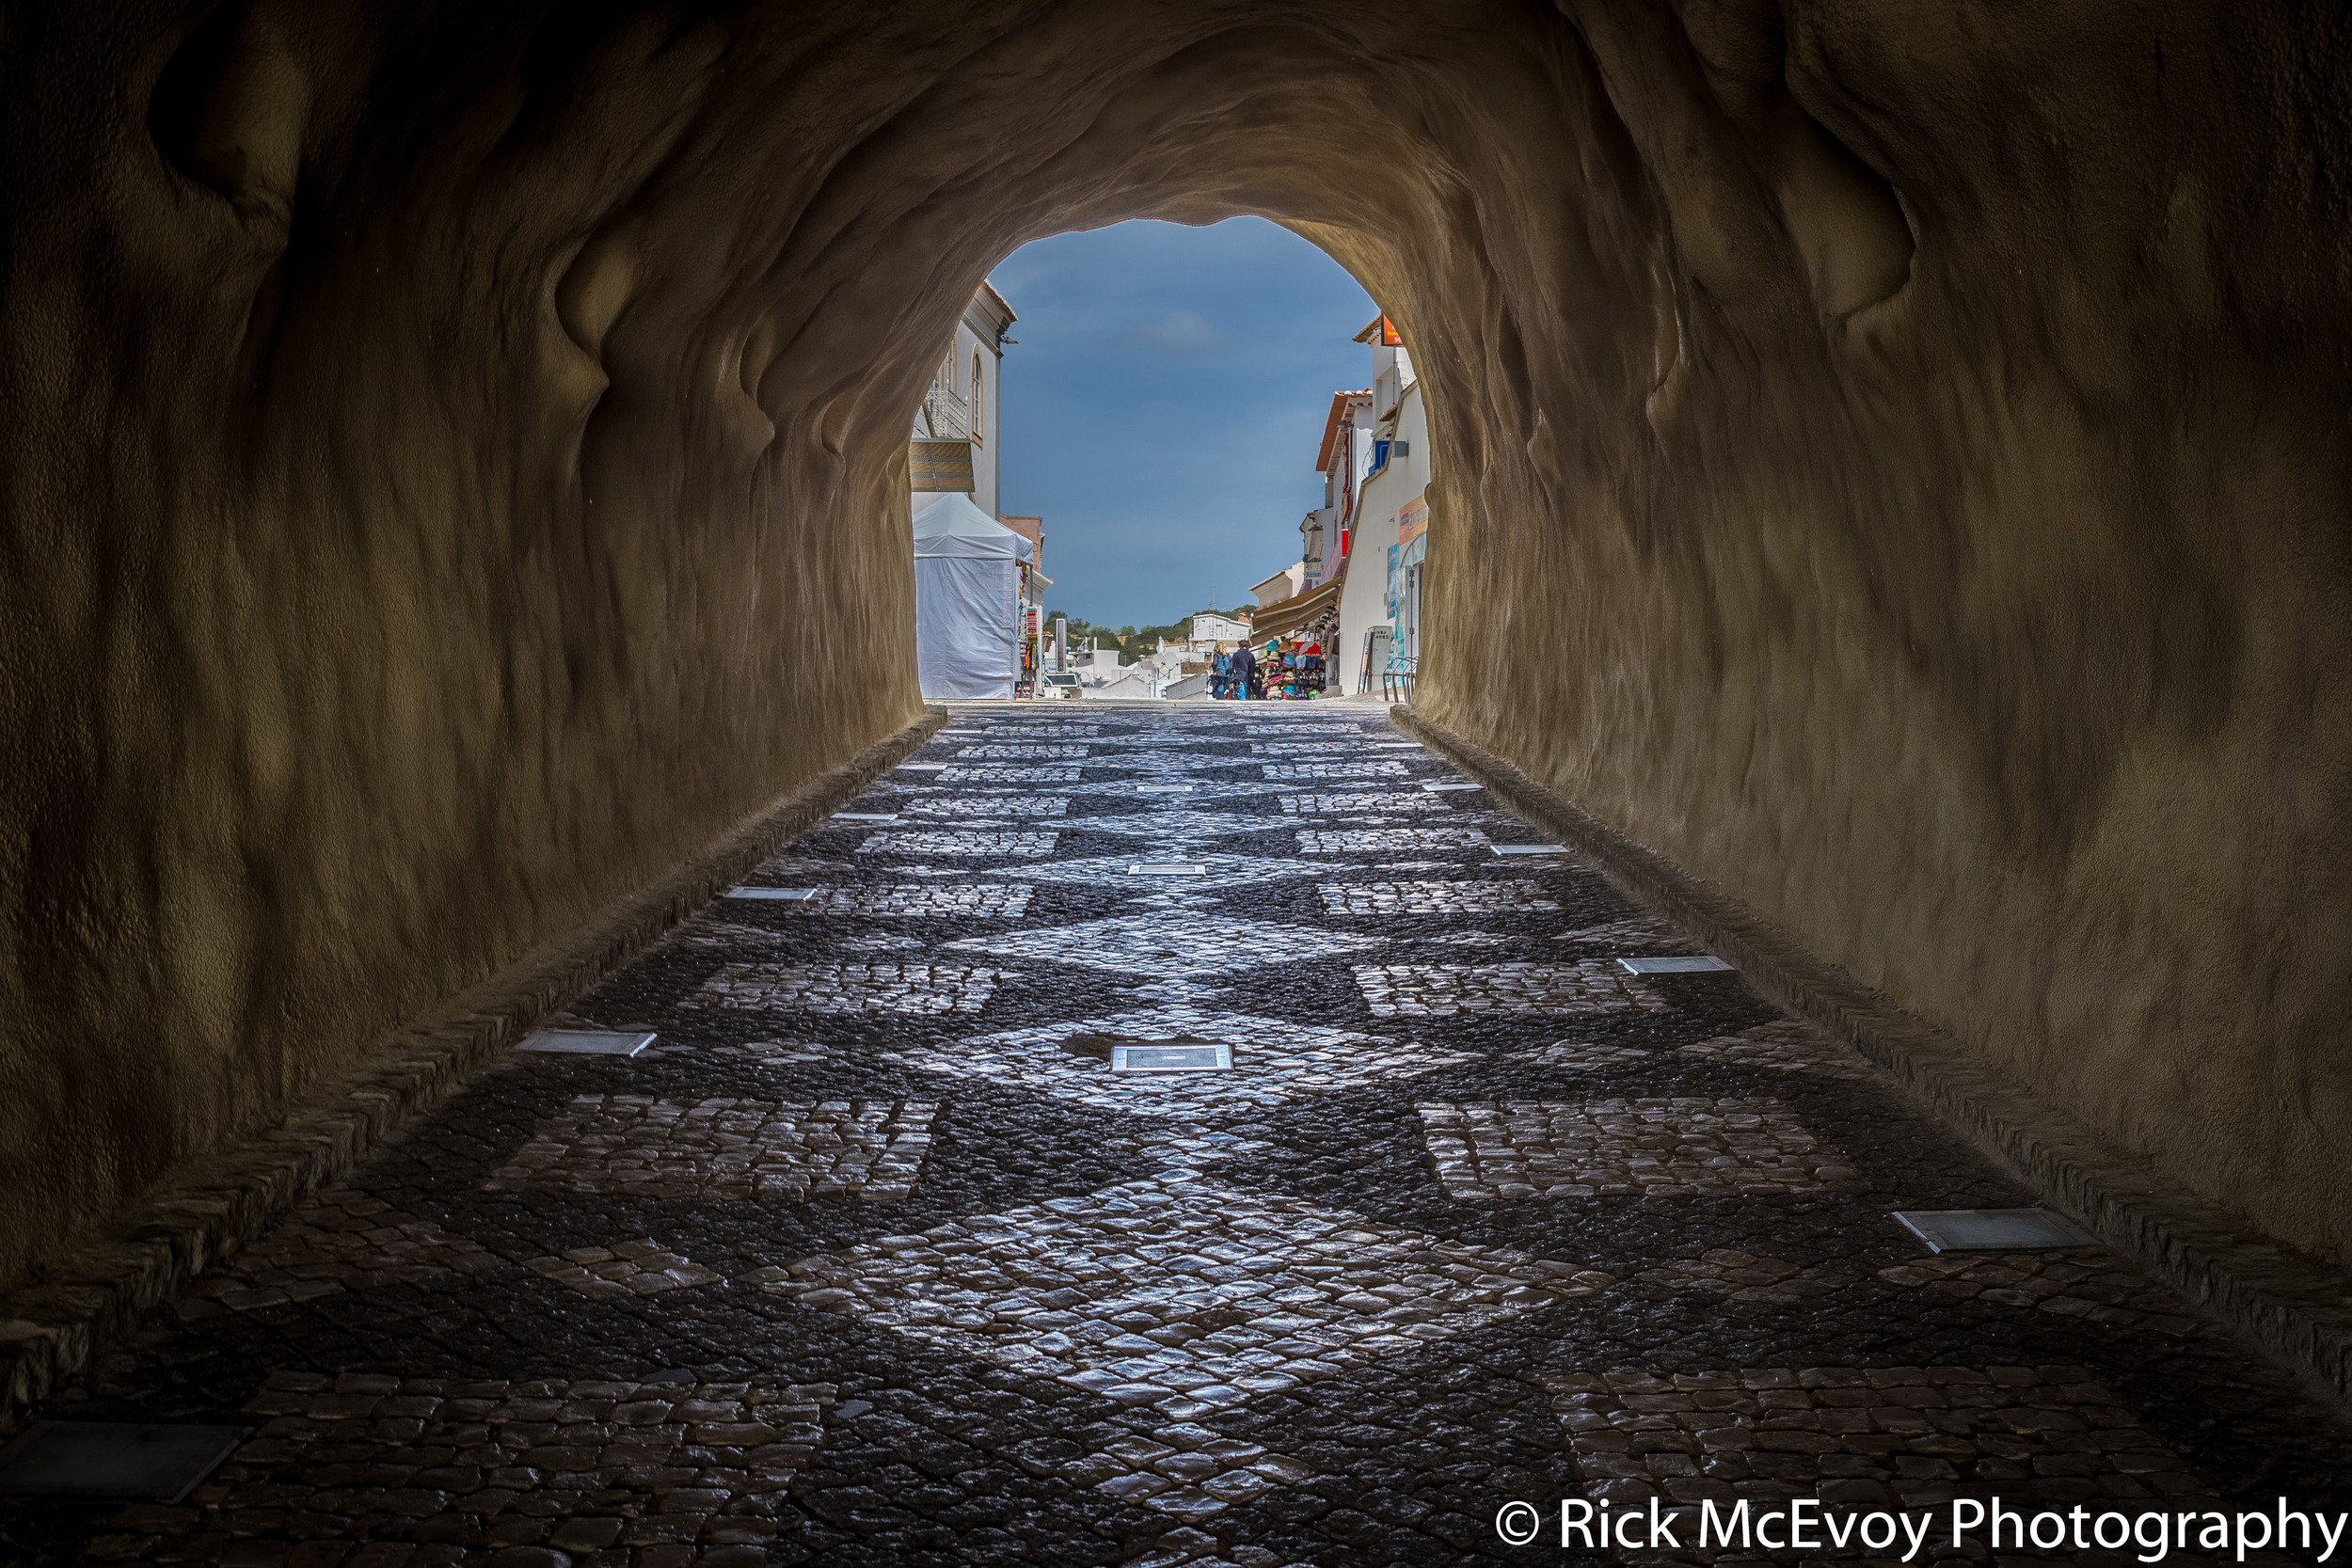 Tunnel, Albufeira, Portugal, by Rick McEvoy Photography